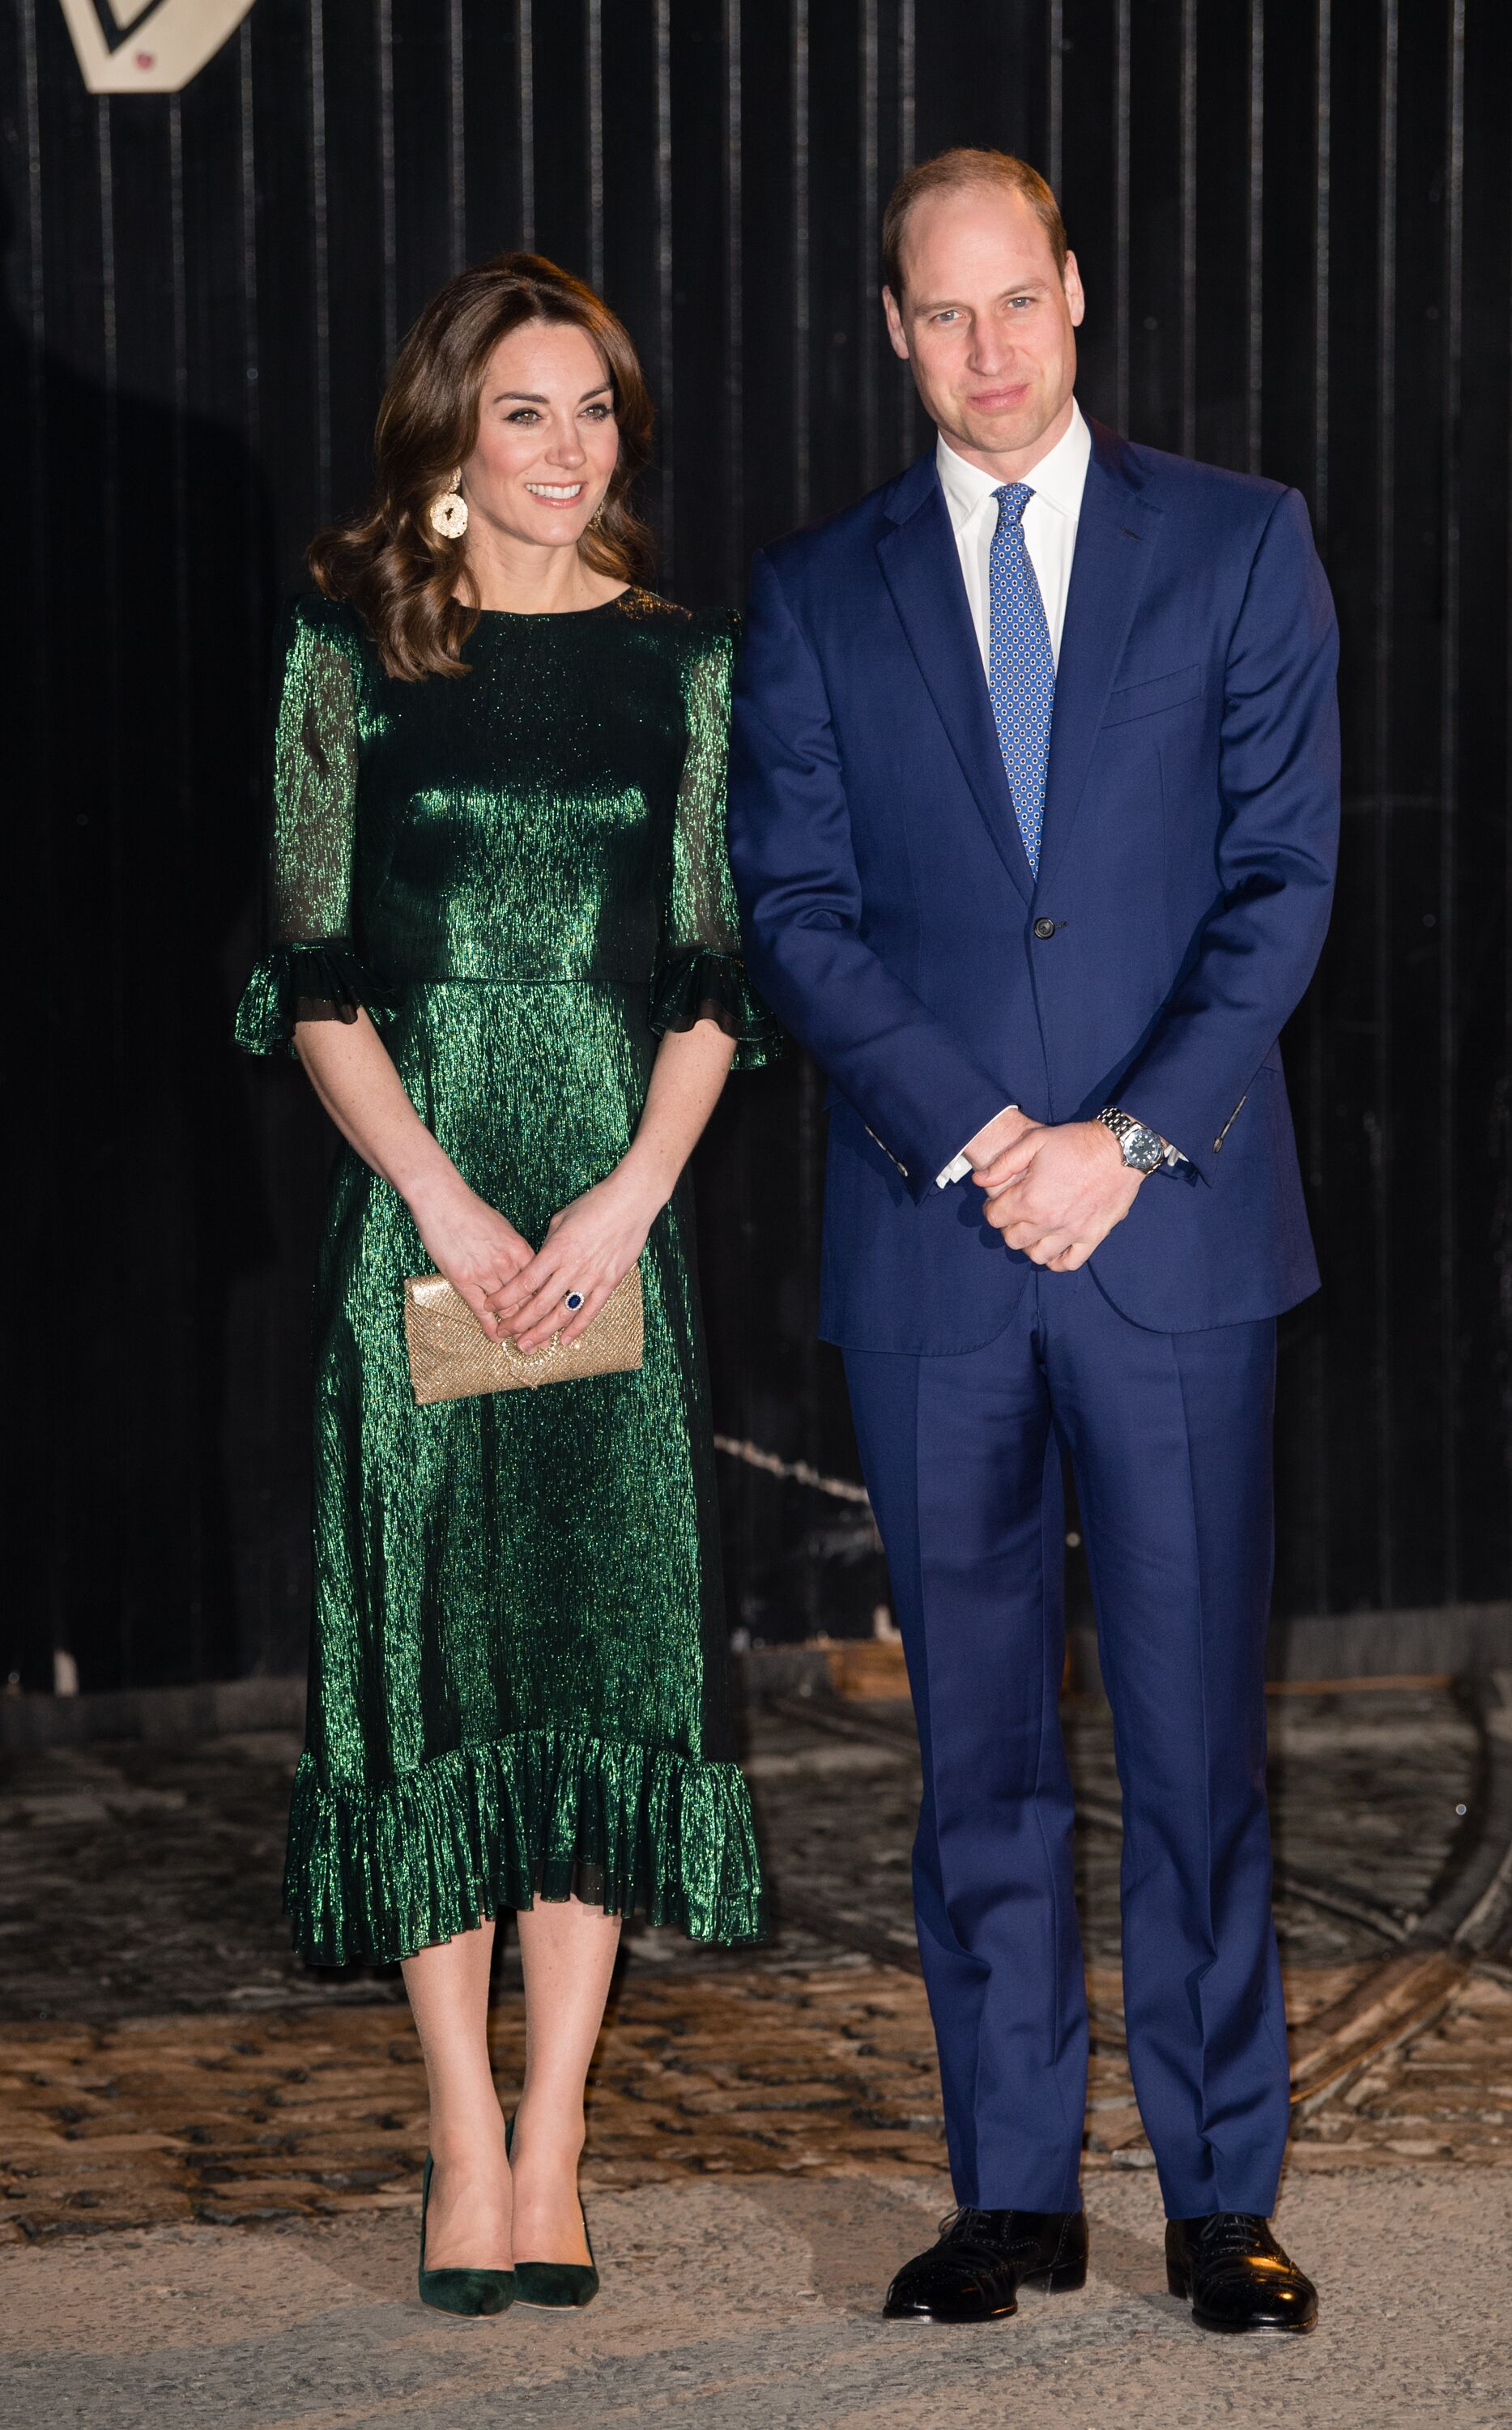 Kate Middleton and Prince William arrive at the Guinness Storehouse's Gravity Bar. | Source: Getty Images